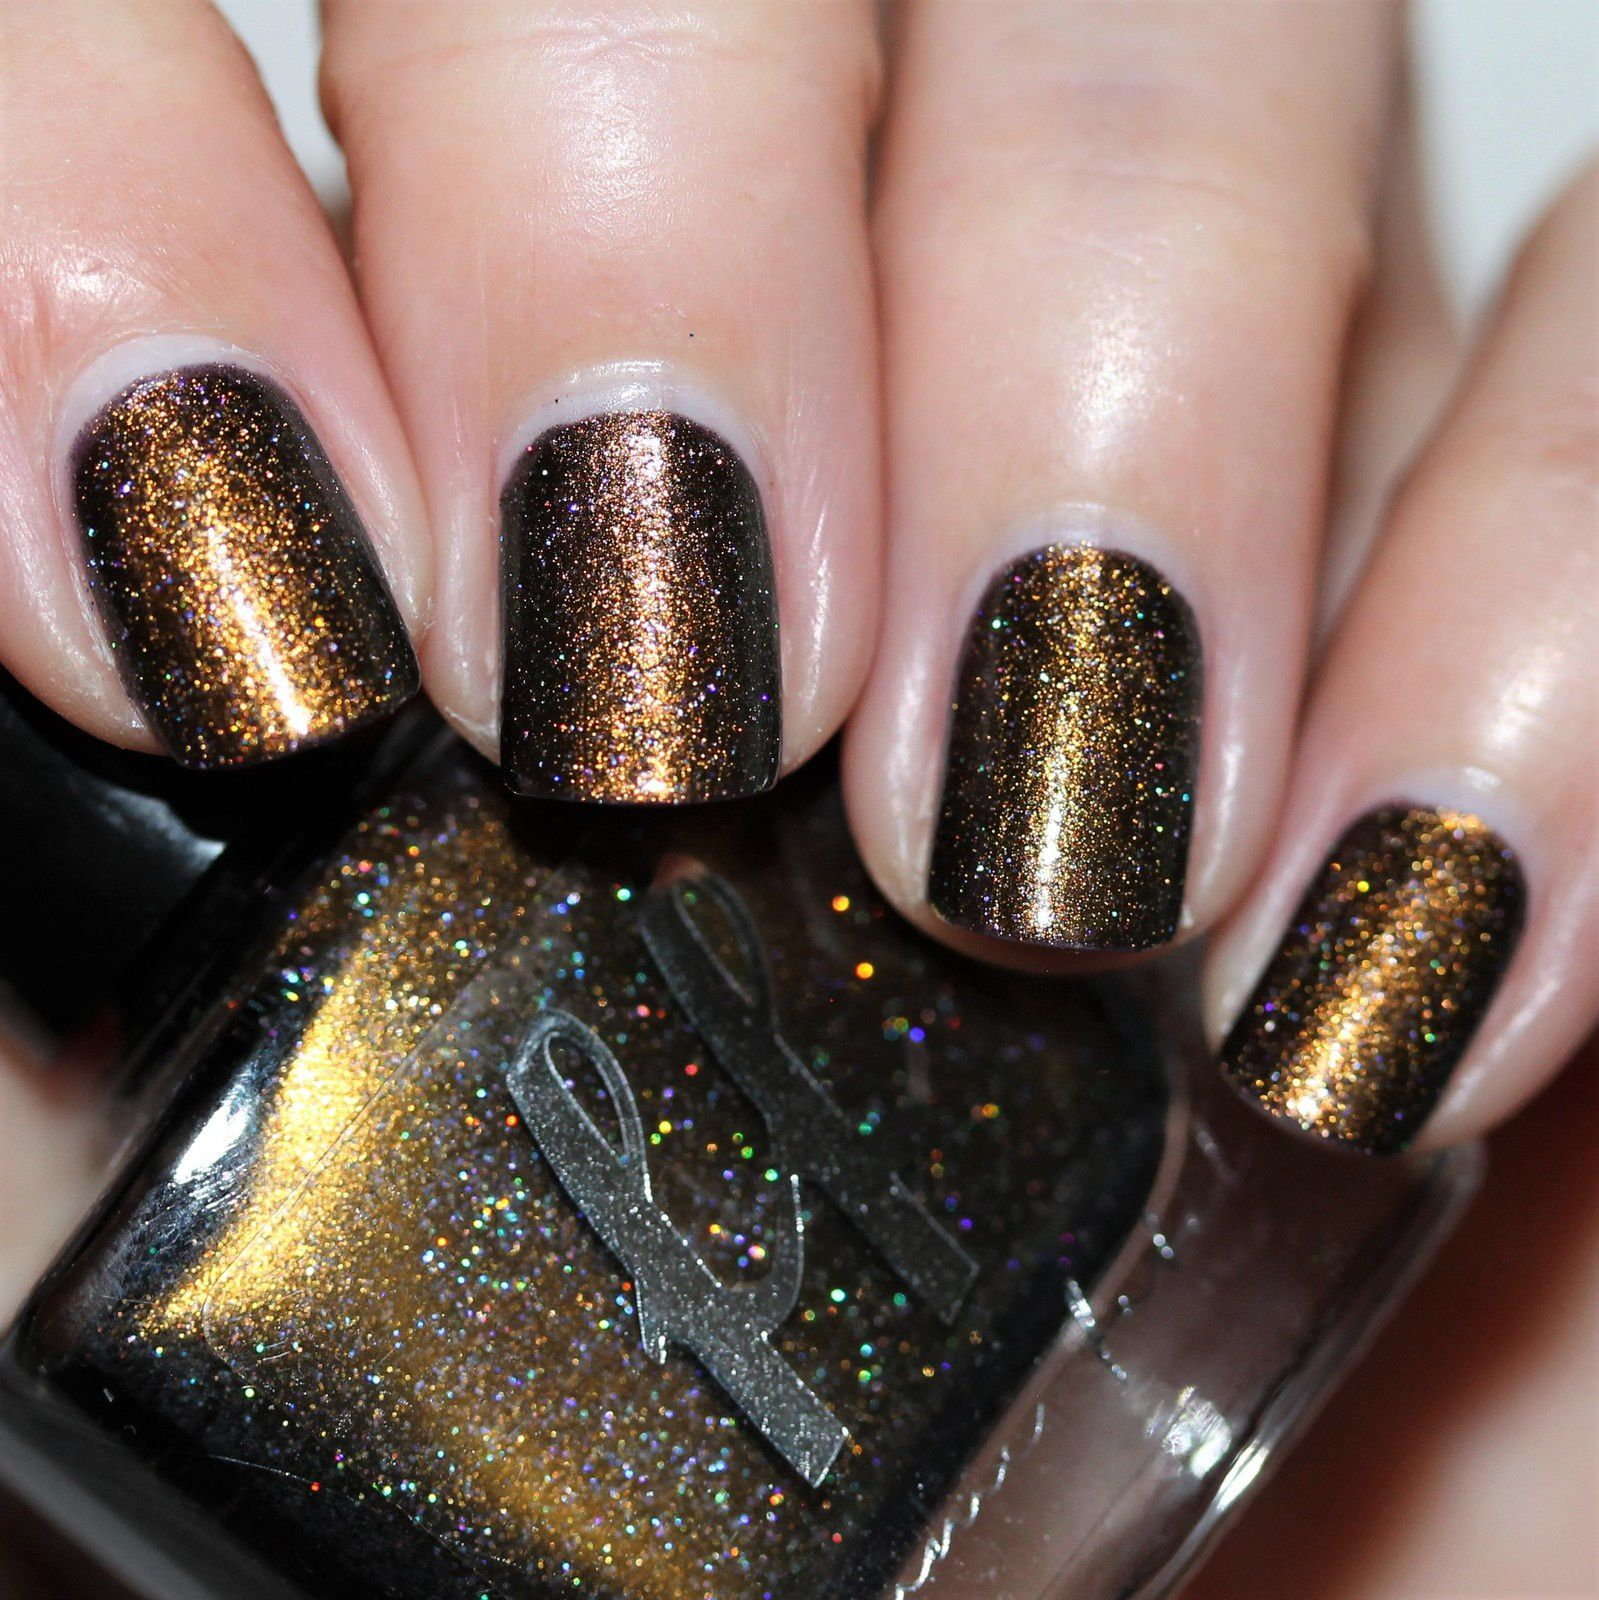 The Two Sphinx (2 coats no top coat), a dark purple base dominated by an olive gold to blue multichrome, and scattered holographic flecks and flakes.